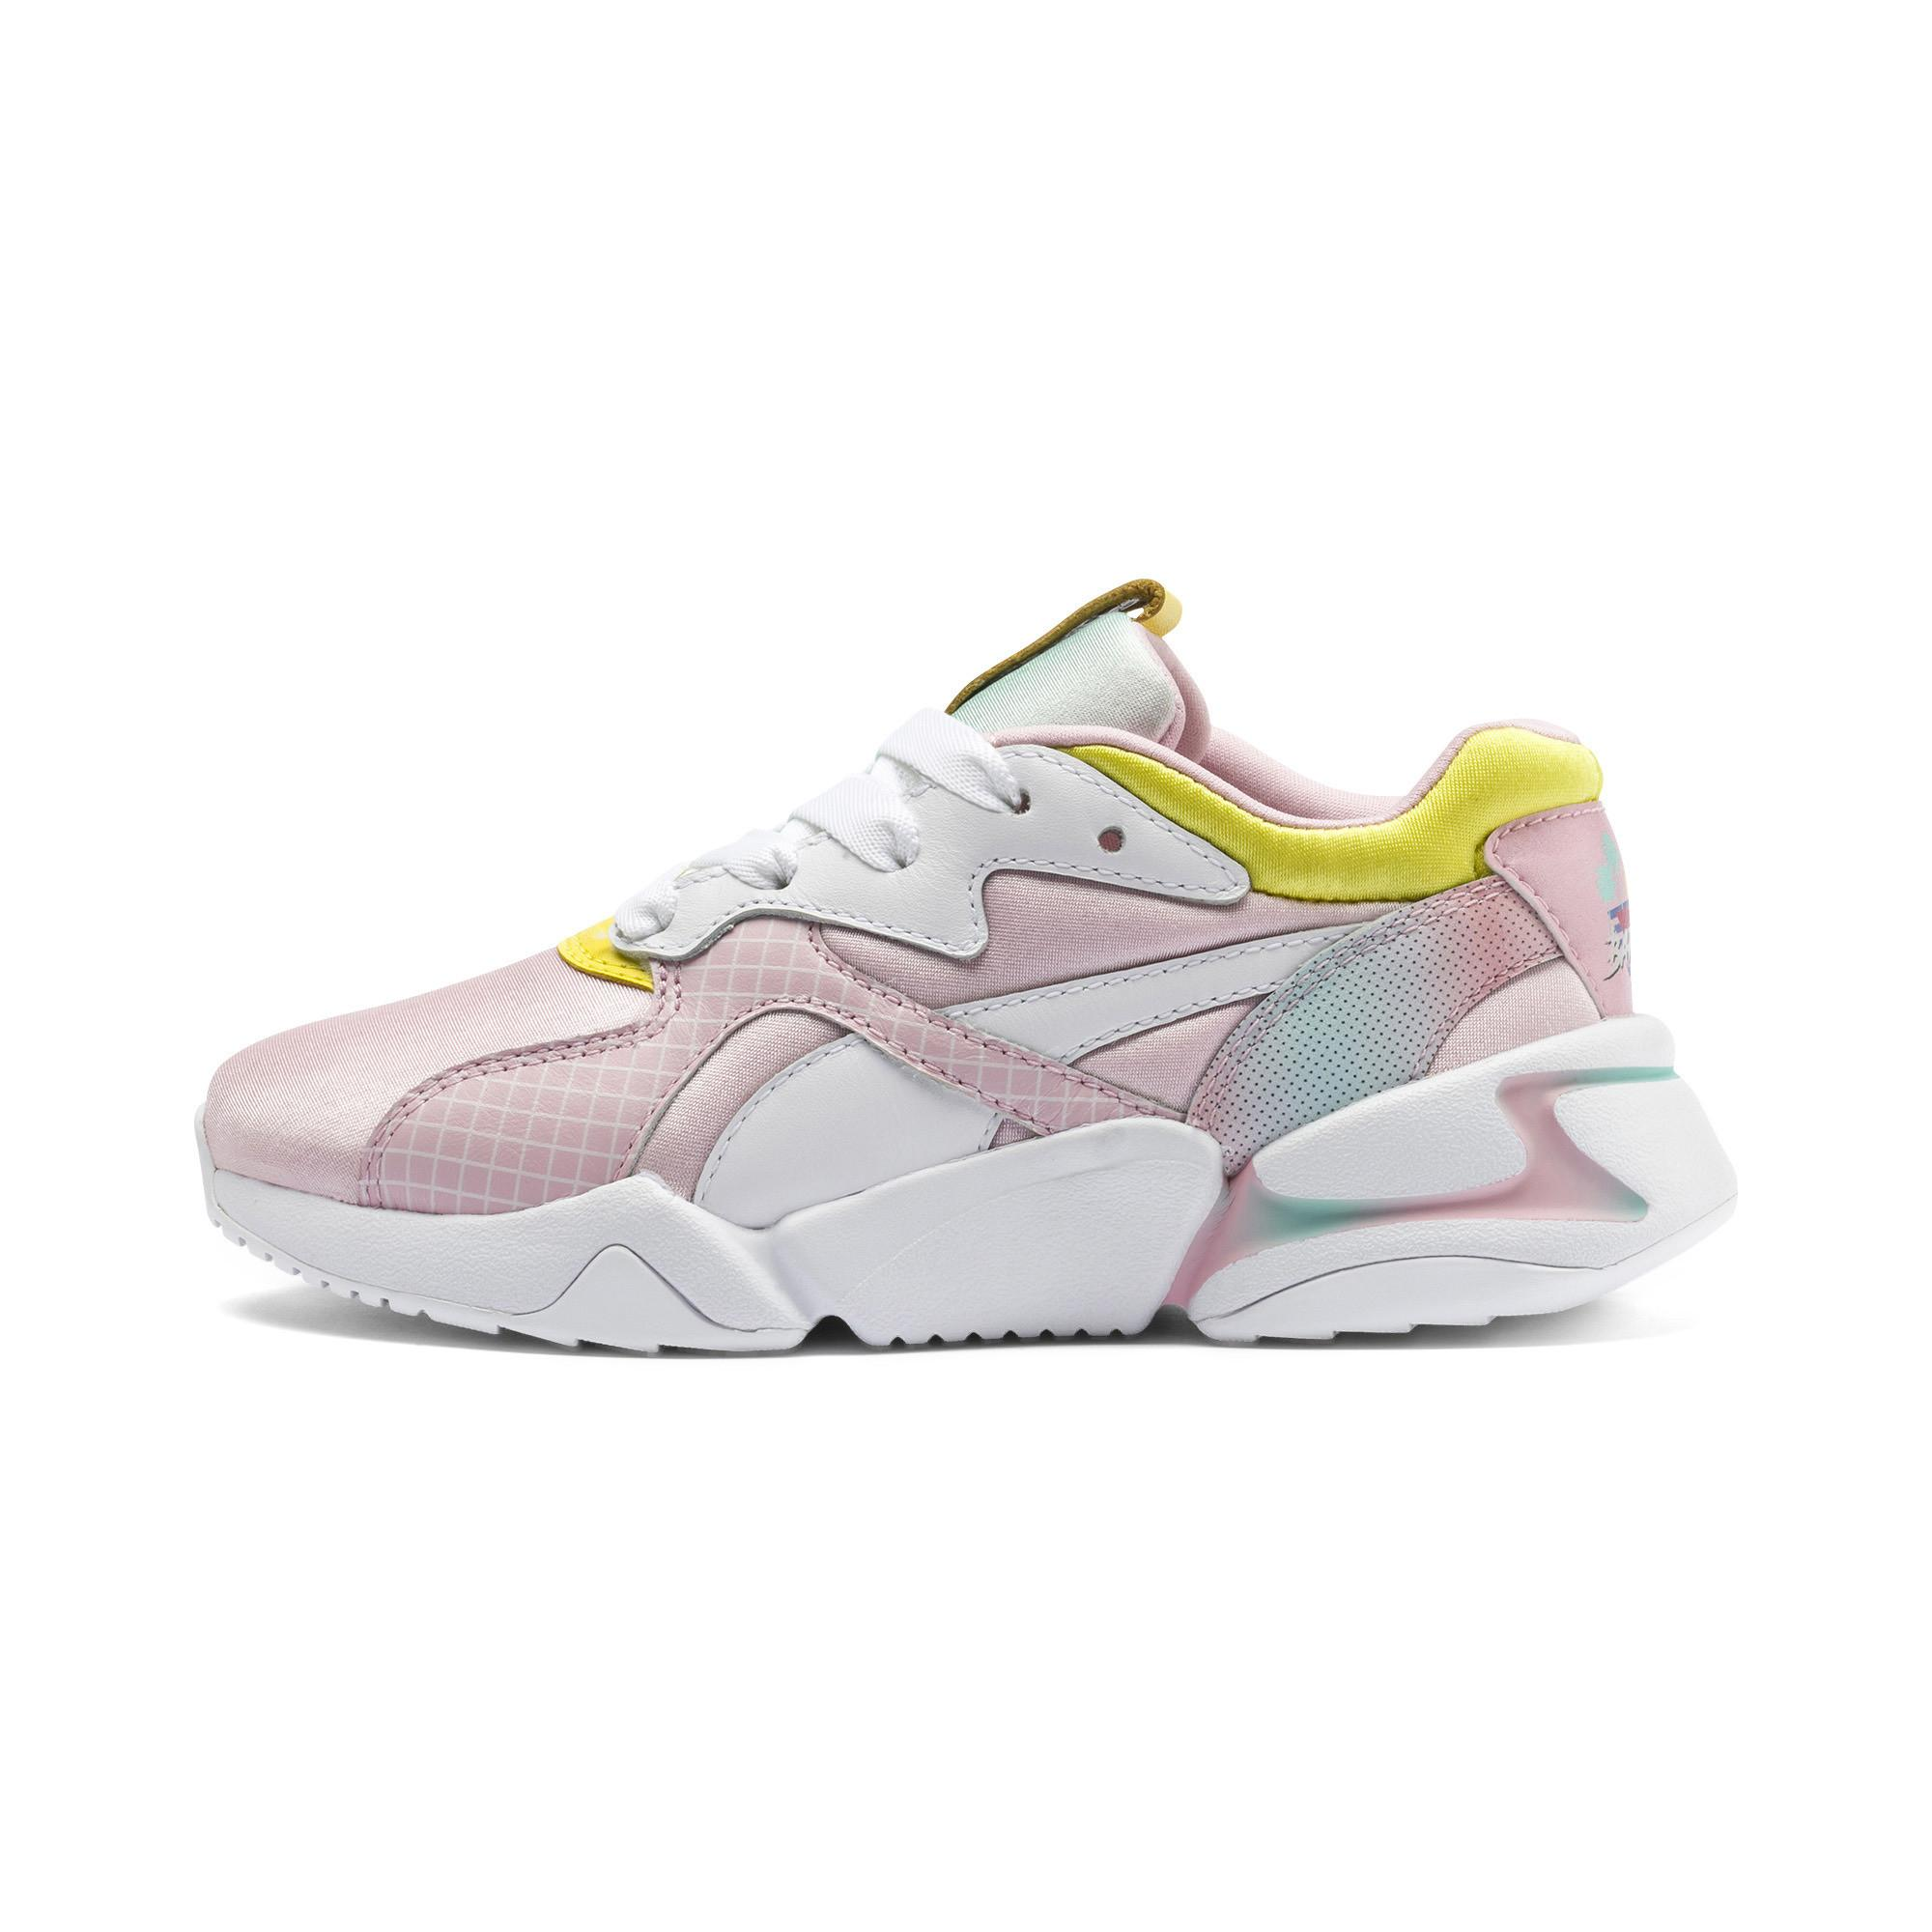 0981e22cd1 PUMA Nova X Barbie Sneakers Ps in White - Lyst